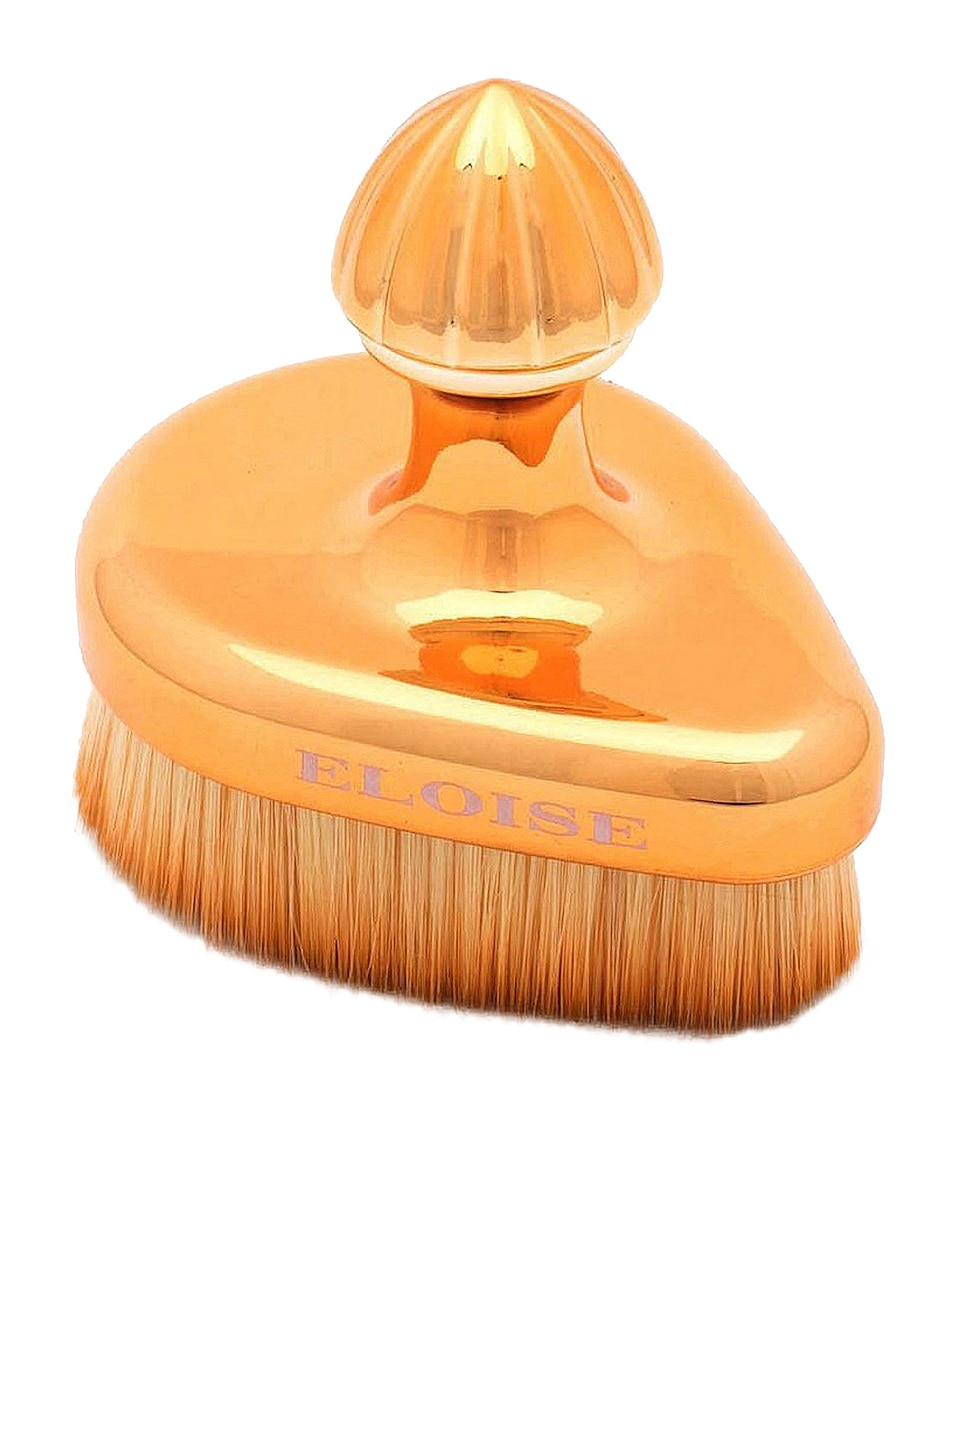 Eloise Beauty Tear Drop Brush in Gold